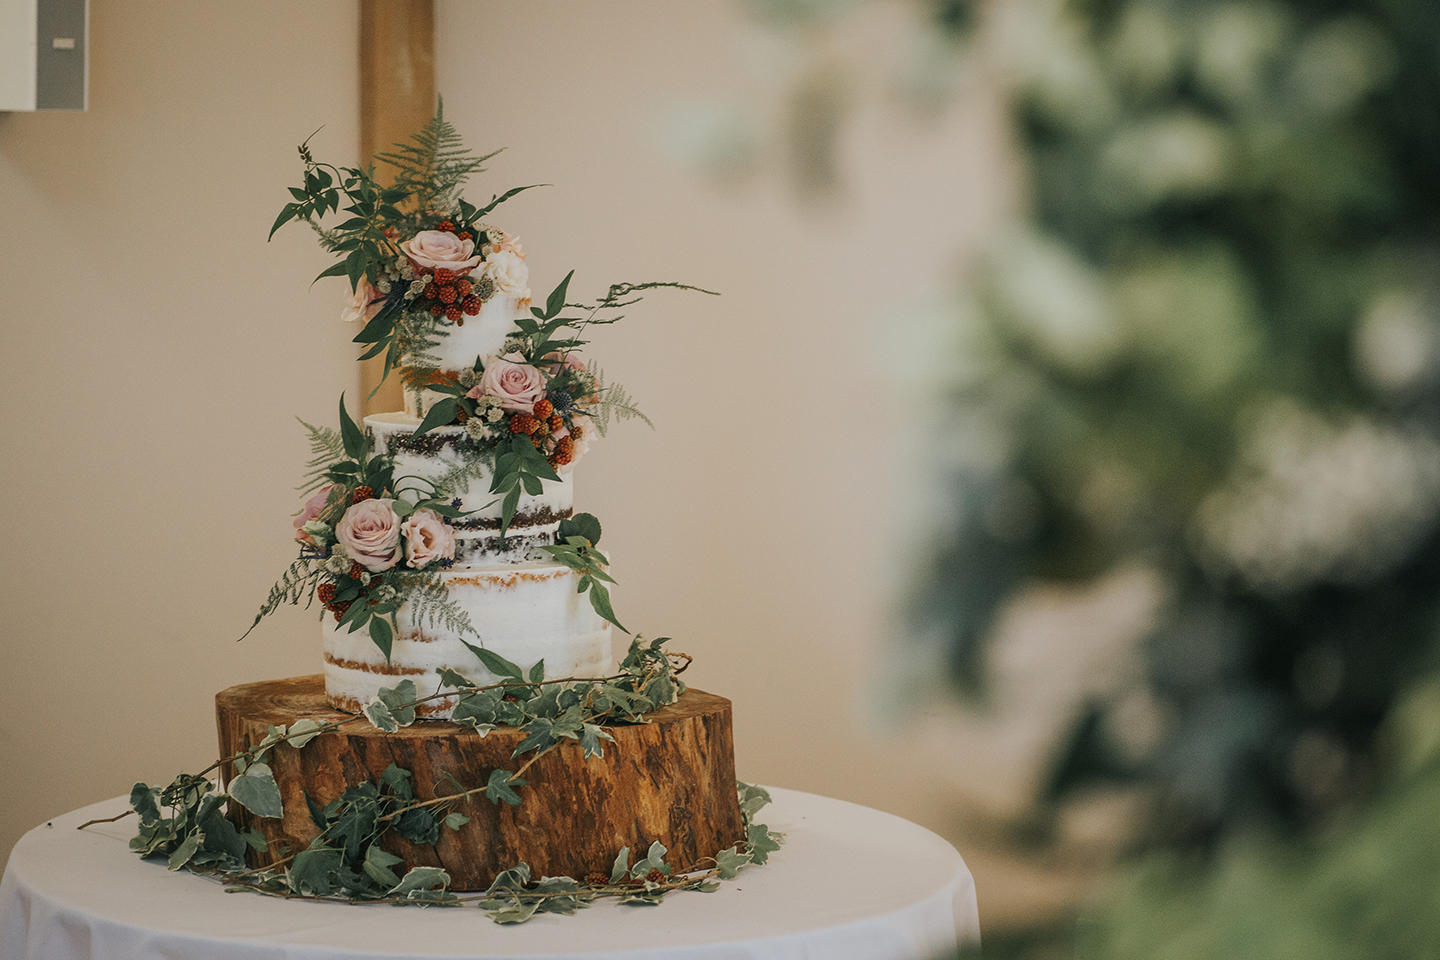 A naked wedding cake is decorated with flowers and berries for a spring wedding at Bassmead Manor Barns